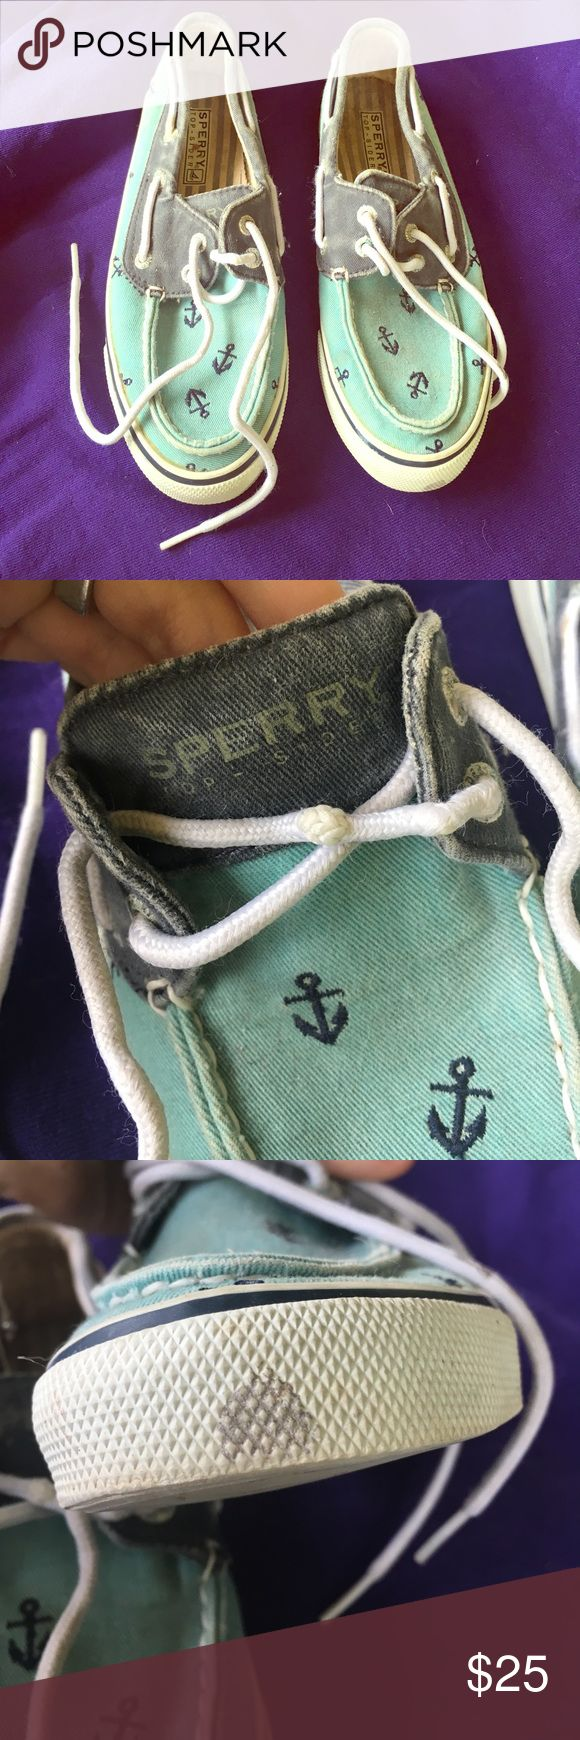 ✨FLASH SALE Sperry top-siders These shoes are relatively worn, but still have a lot of life left in them! Sperry Top-Sider Shoes